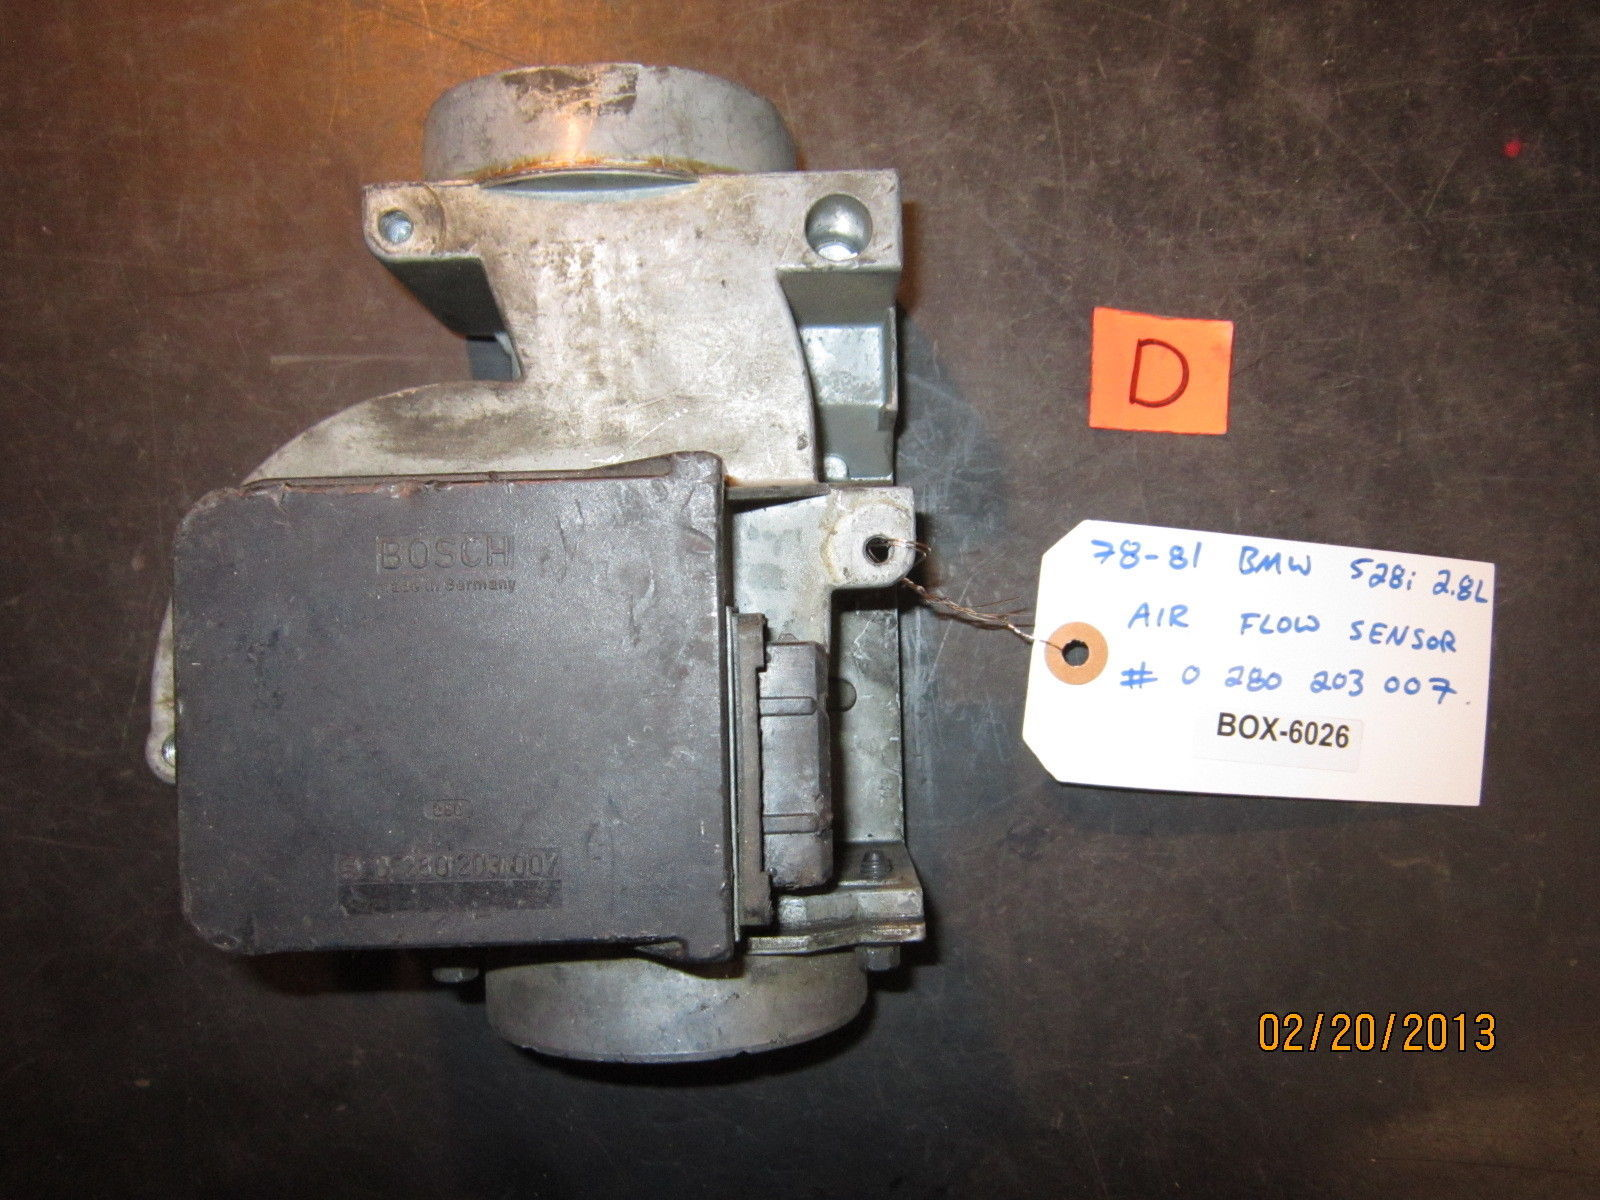 78 79 80 81 BMW 528i 2.8L AIR FLOW SENSOR #0 280 202 072 *See item description*